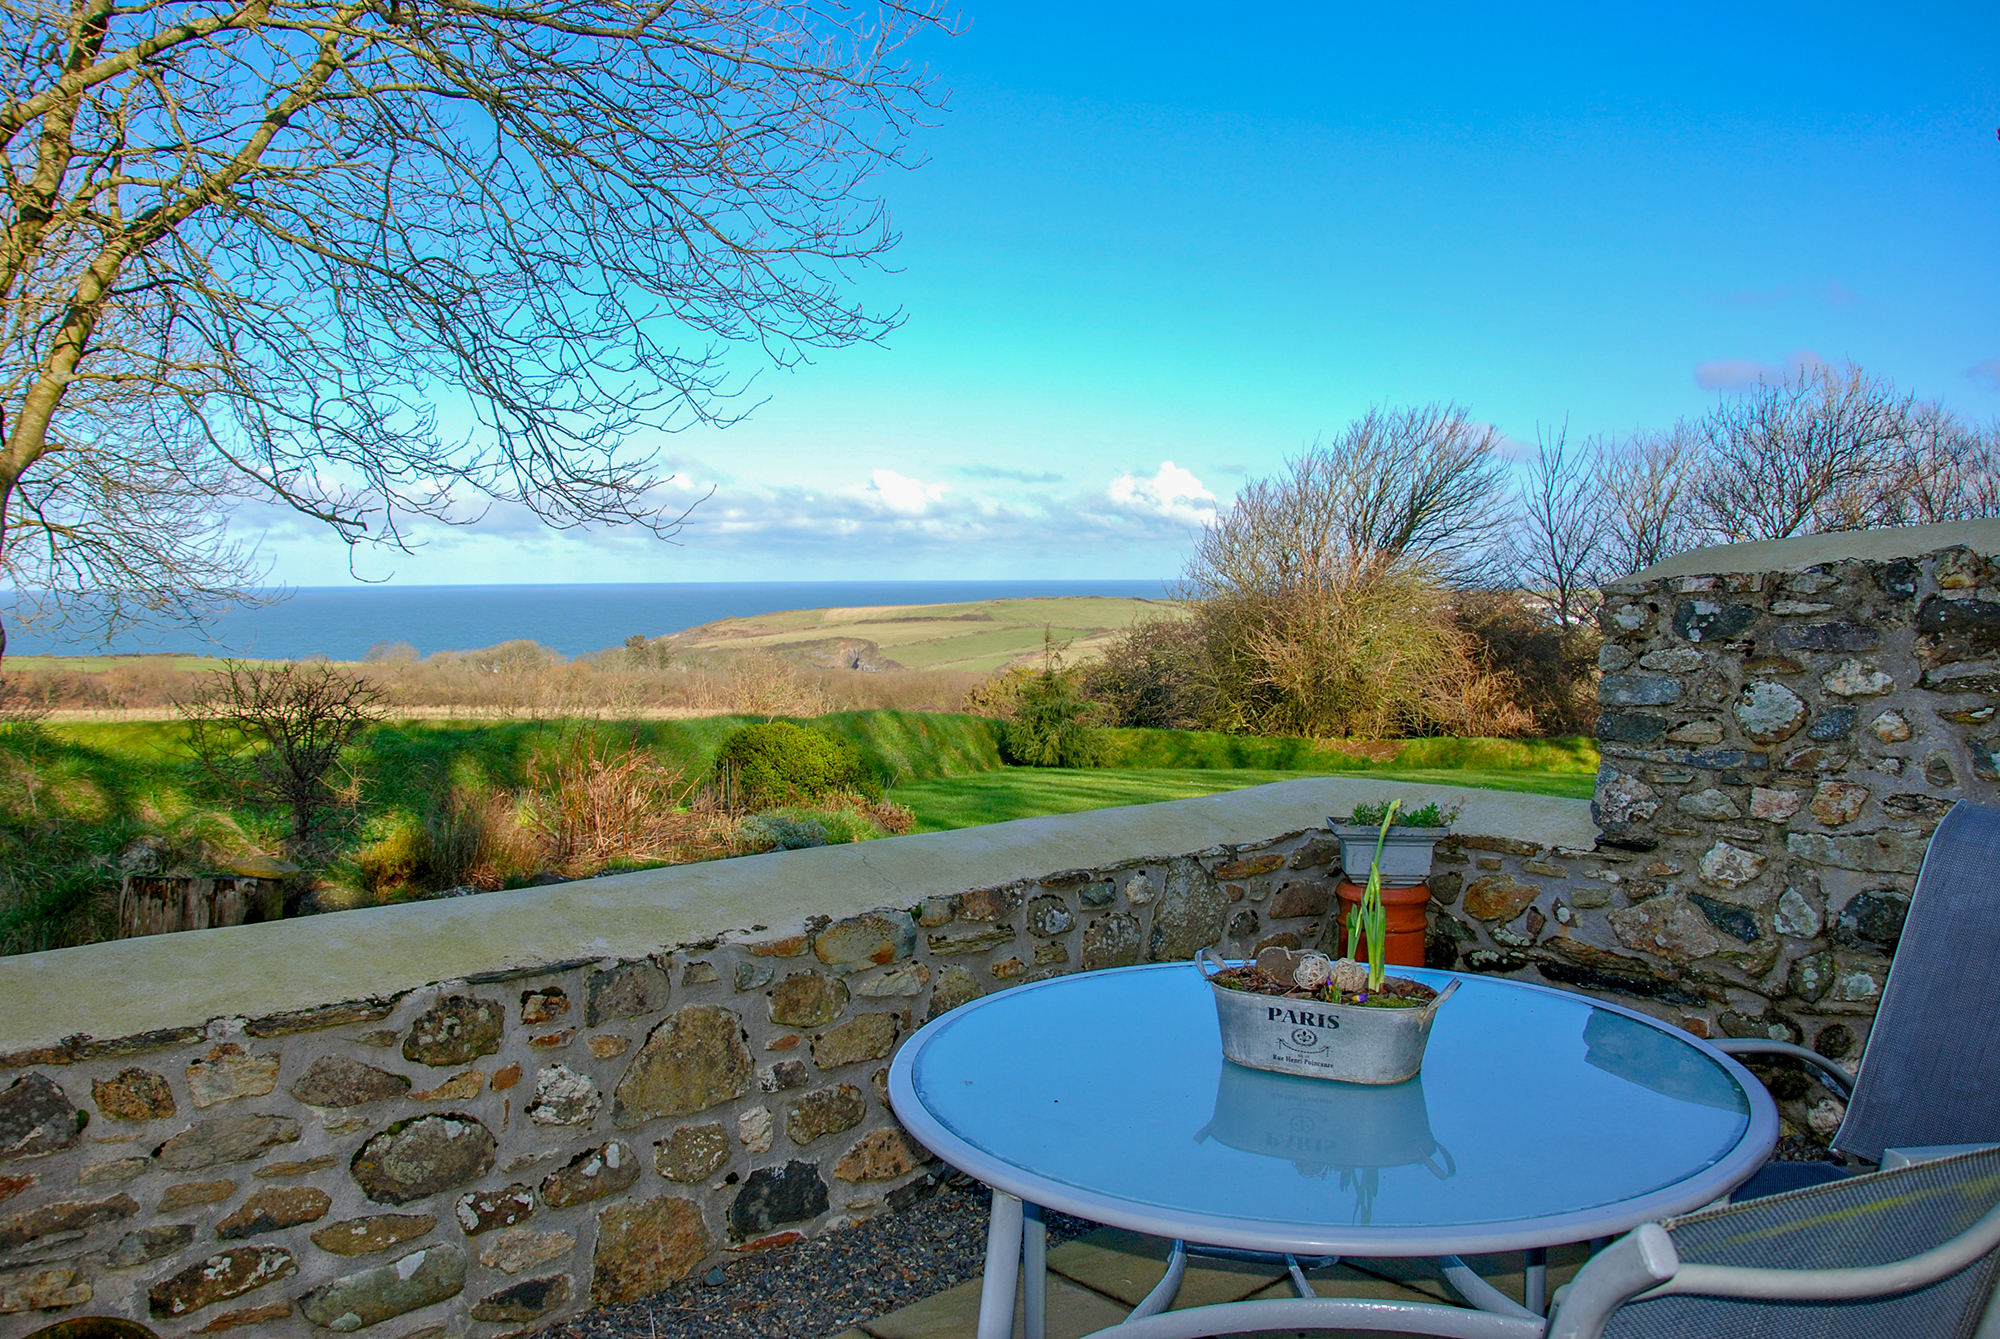 Yr Hafan - Penberi Self Catering Cottage sunny private patio with sea views